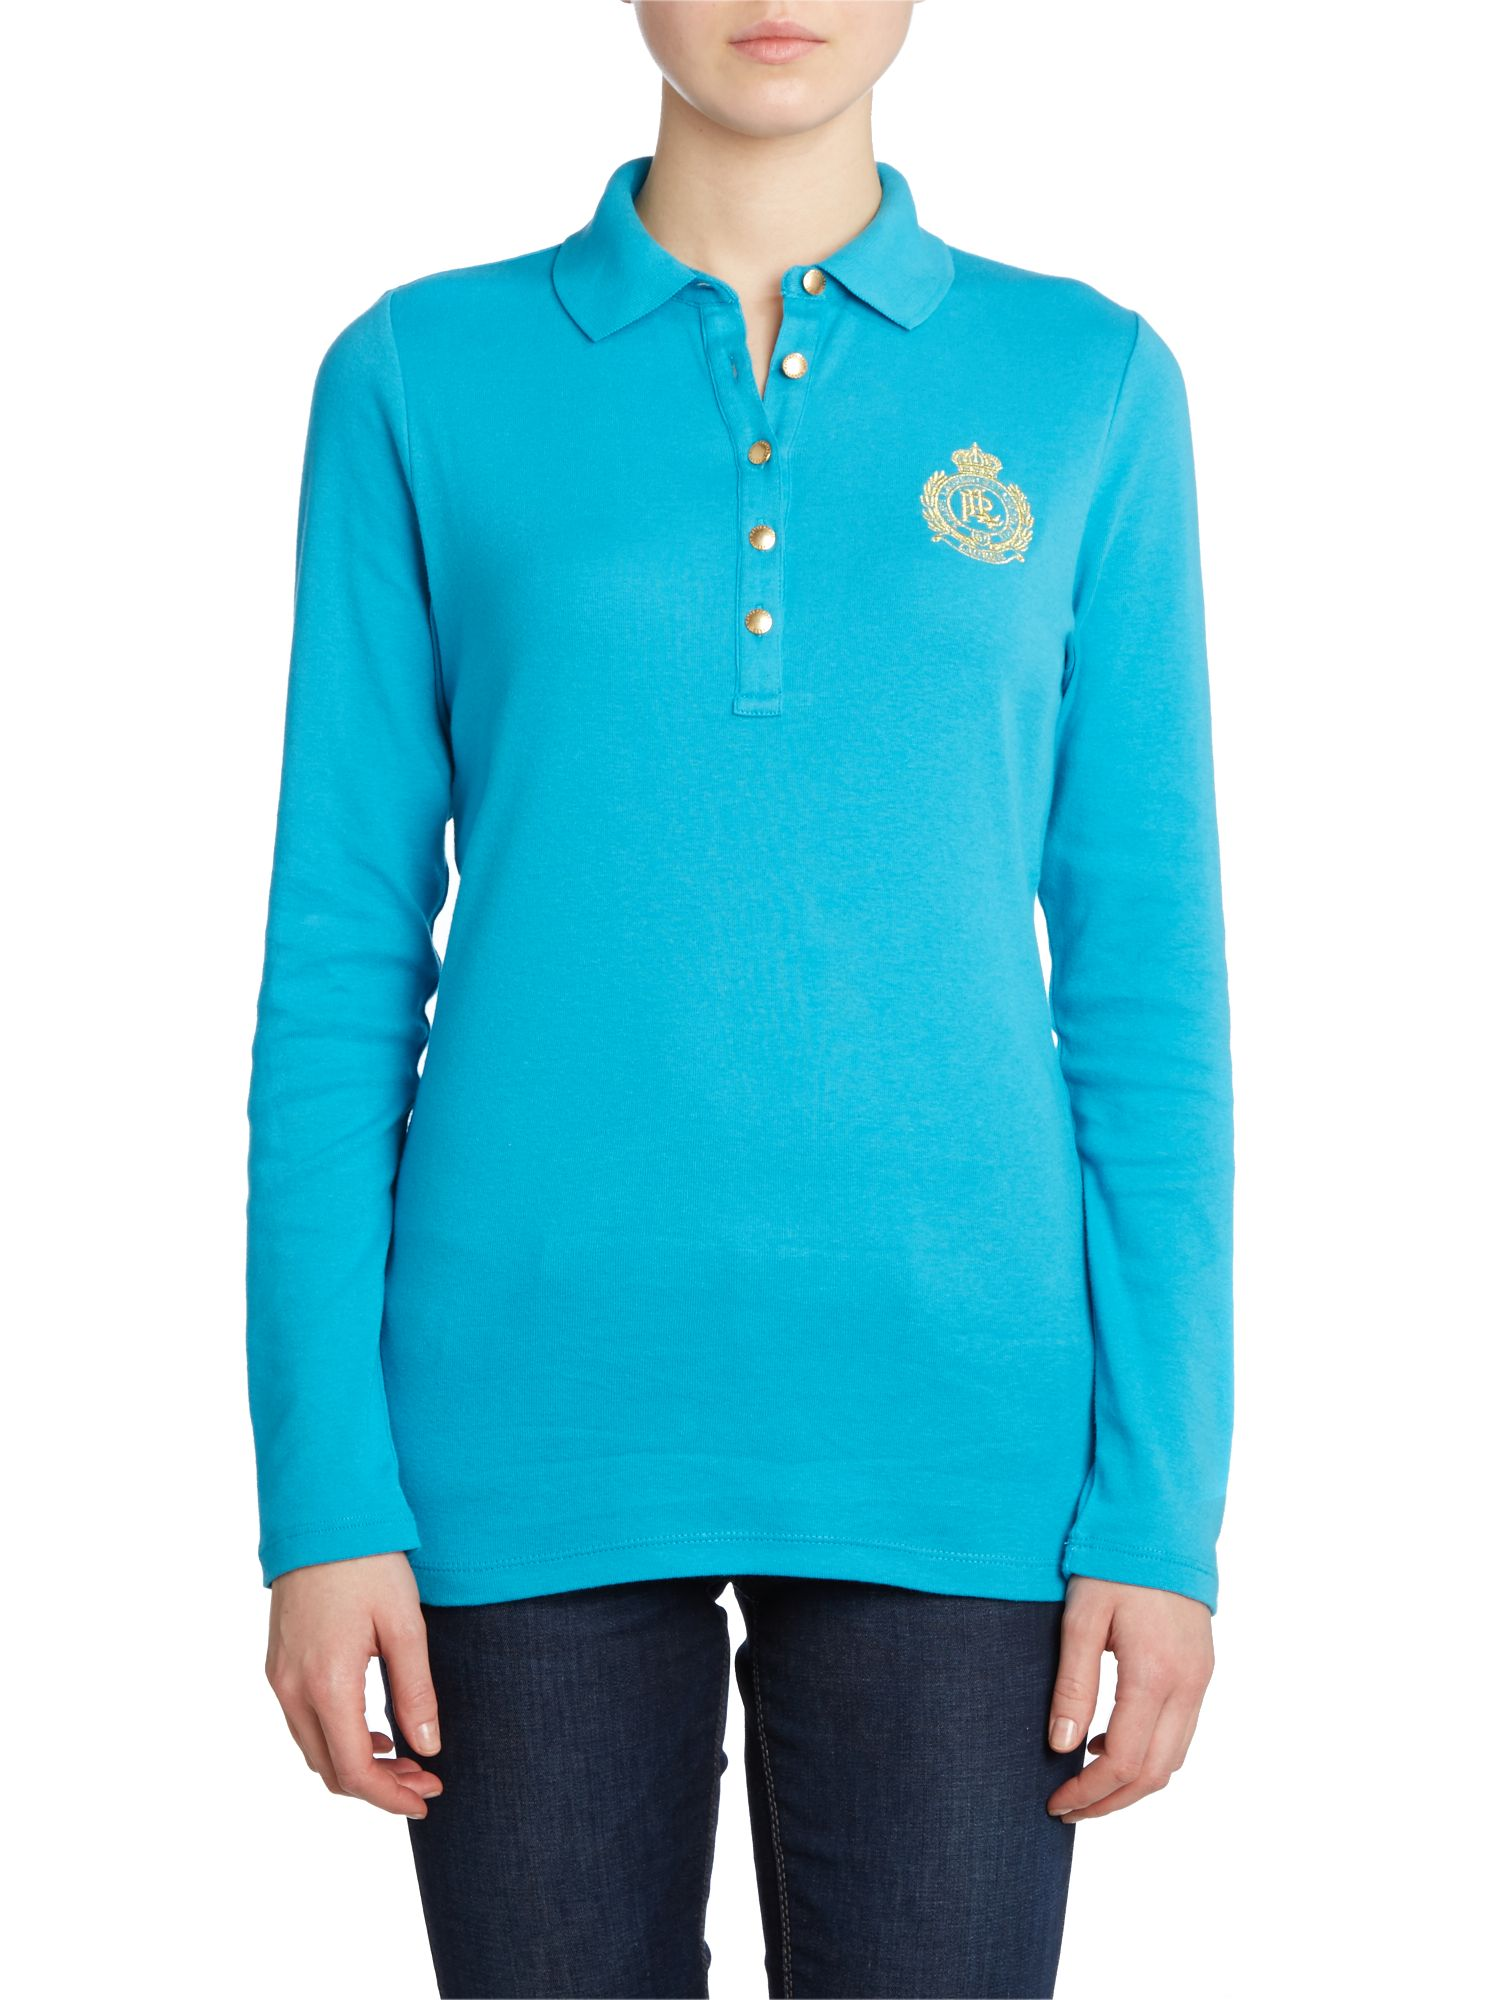 Long sleeve polo with gold crest